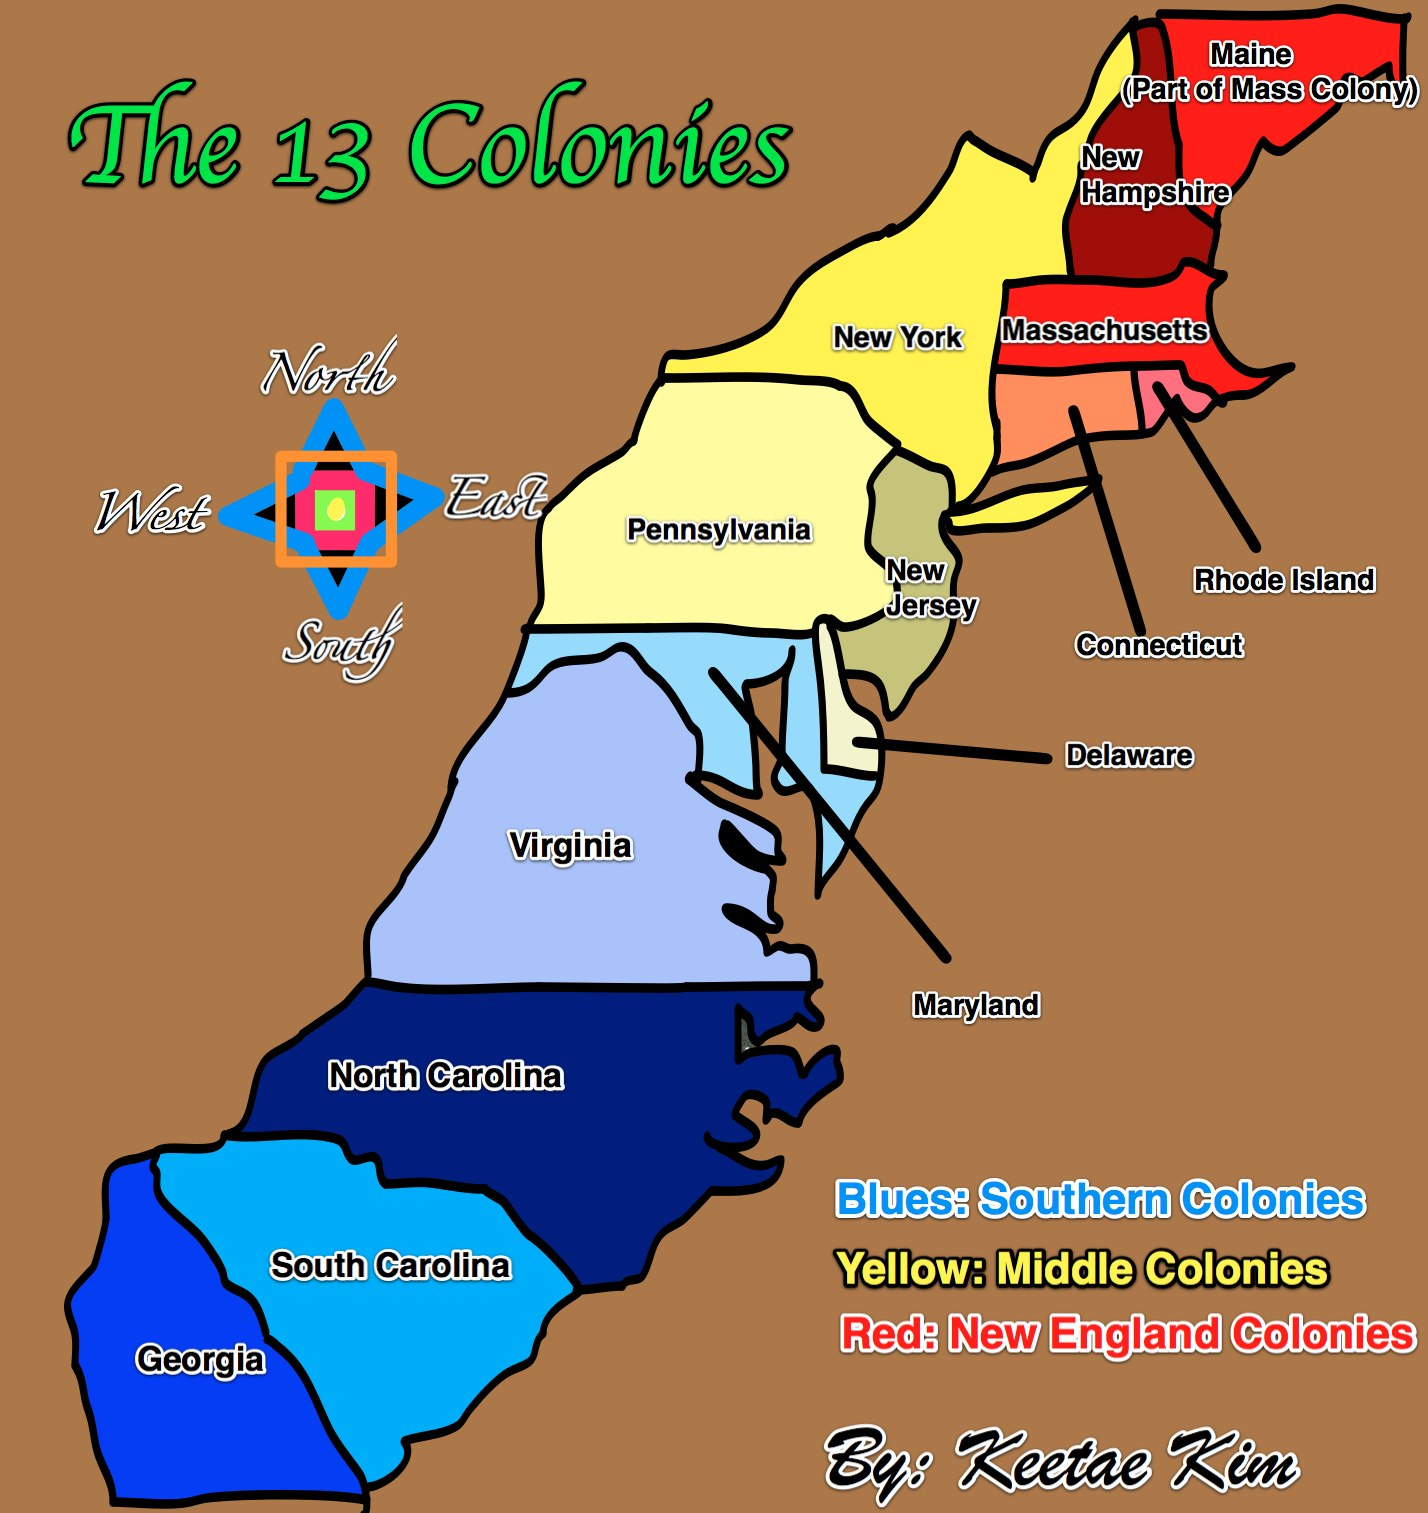 Remix Of The Colony Of Virginia Was The First English ThingLink - Georgia map 13 colonies